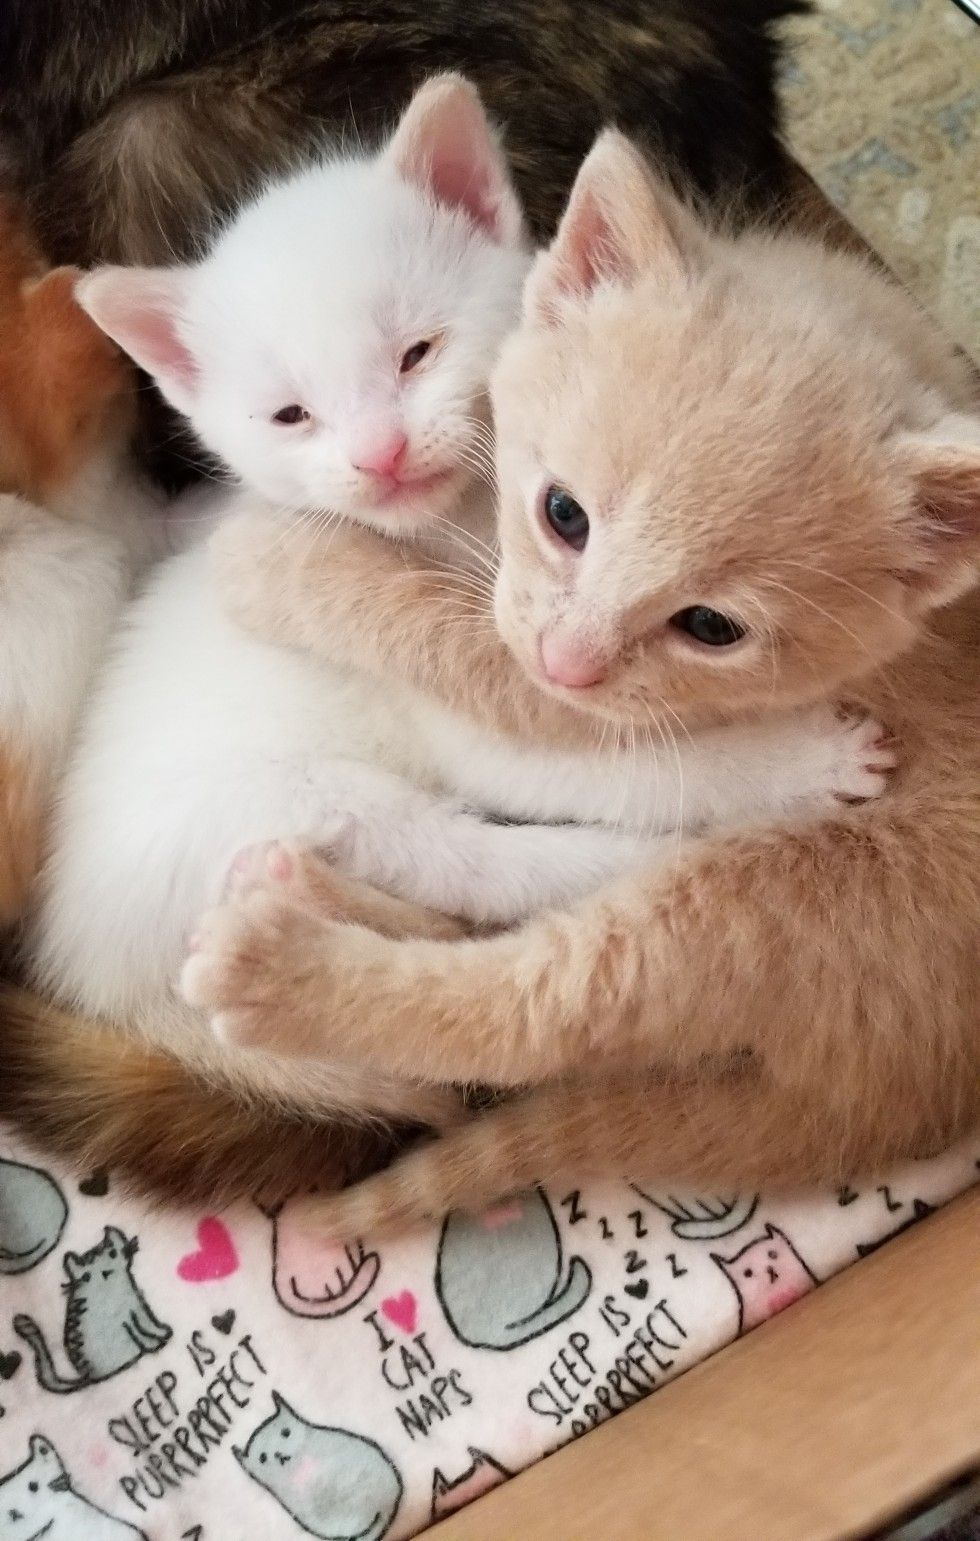 Hugging Box Full Of Kitty Love Cute Cat Gif Cute Animals Puppies Cats And Kittens